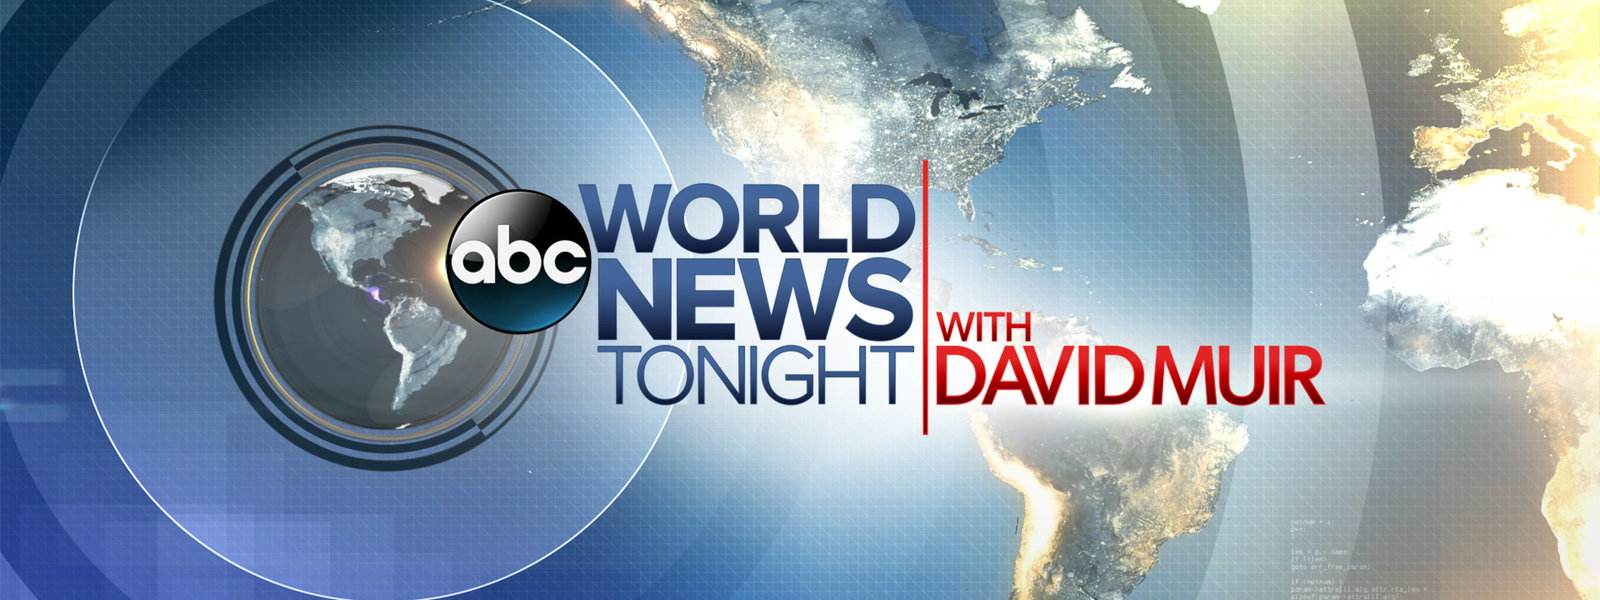 ABC World News Tonight with David Muir joins Ciel on a Home Energy Audit in Summit, New Jersey. - ABC World News Tonight's Chief Business, Economics, and Technology Correspondent, Rebecca Jarvis, joins the Ciel team on a Ciel Home Energy Audit in Summit, New Jersey.